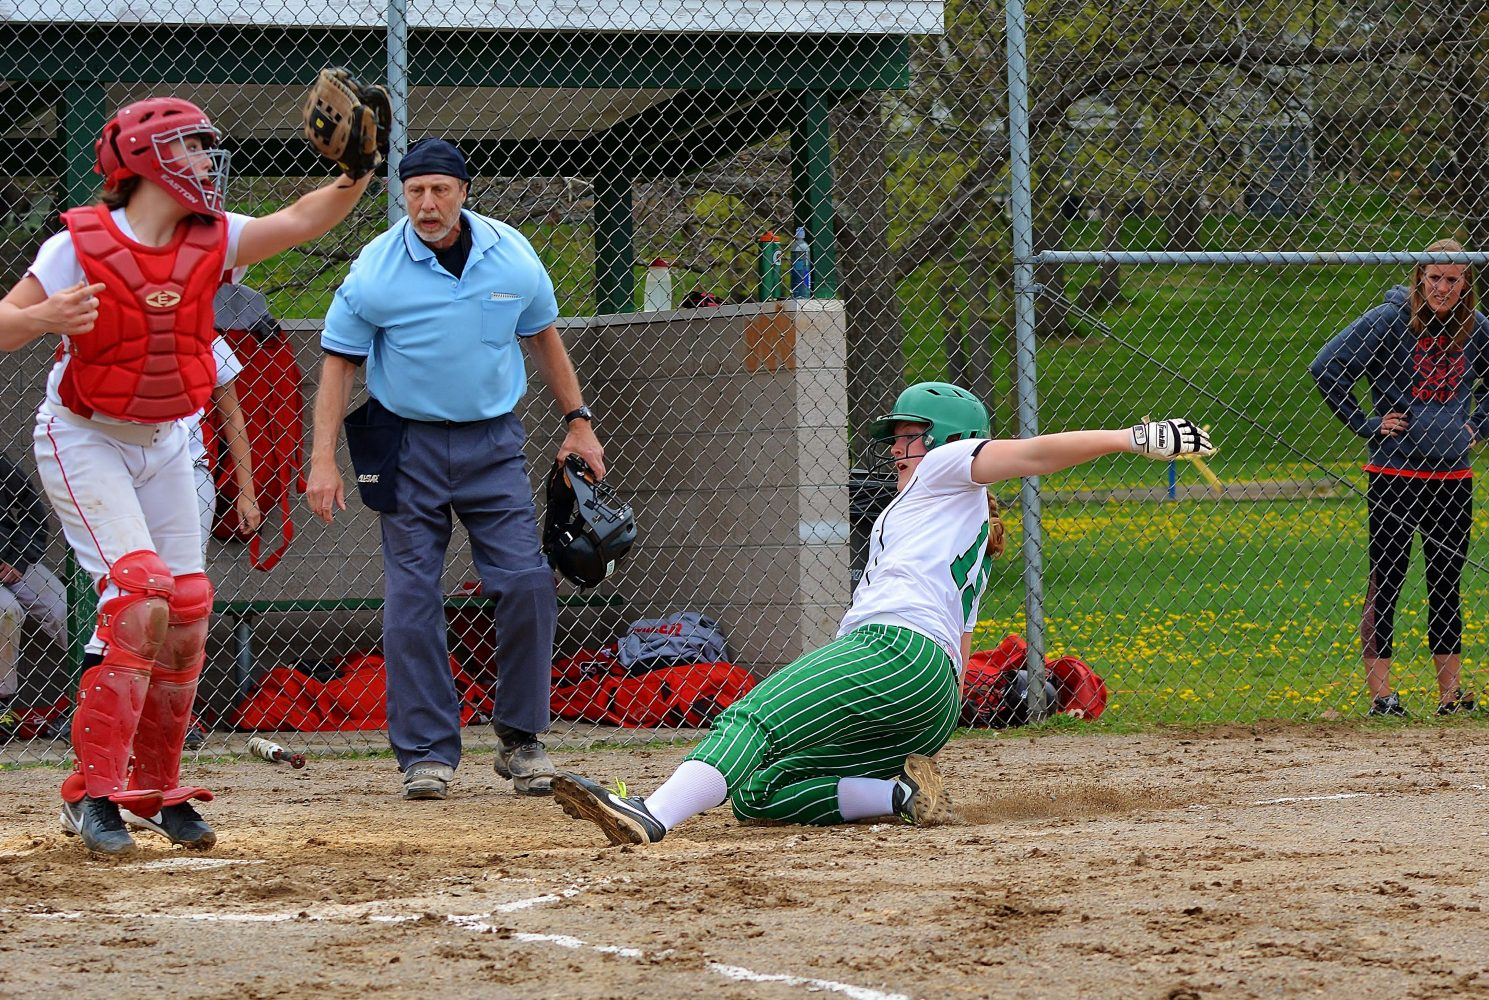 Molly Wagler slides in under the tag.